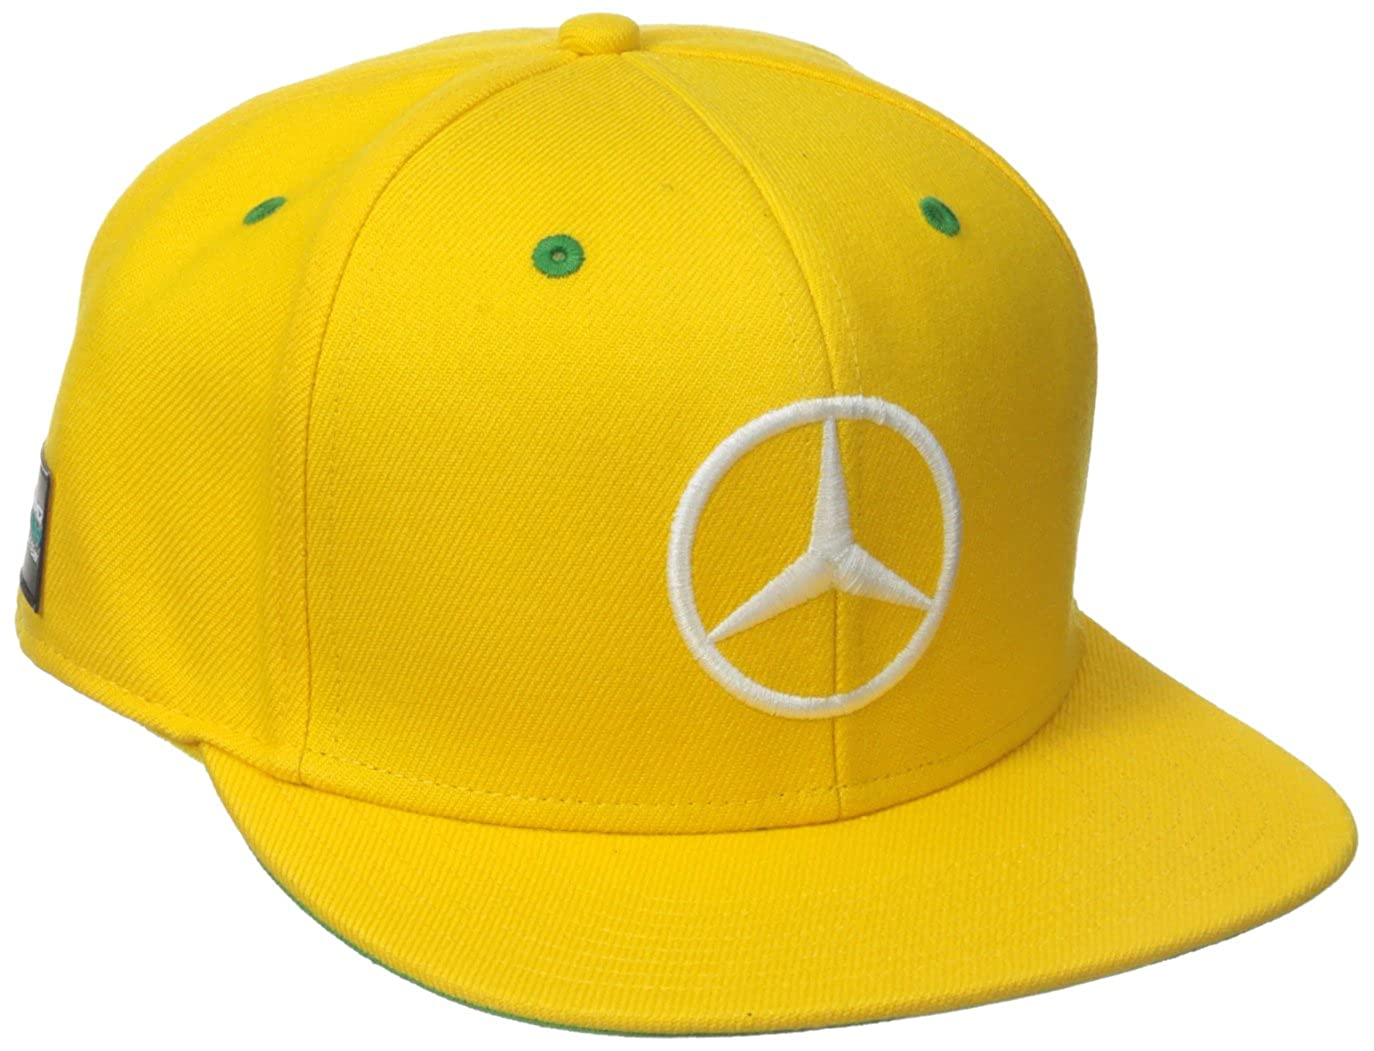 Mercedes Benz Formula 1 AMG Petronas Lewis Hamilton Special Edition Yellow  Brazil Flat Brim Hat at Amazon Men s Clothing store  46ae560aa97